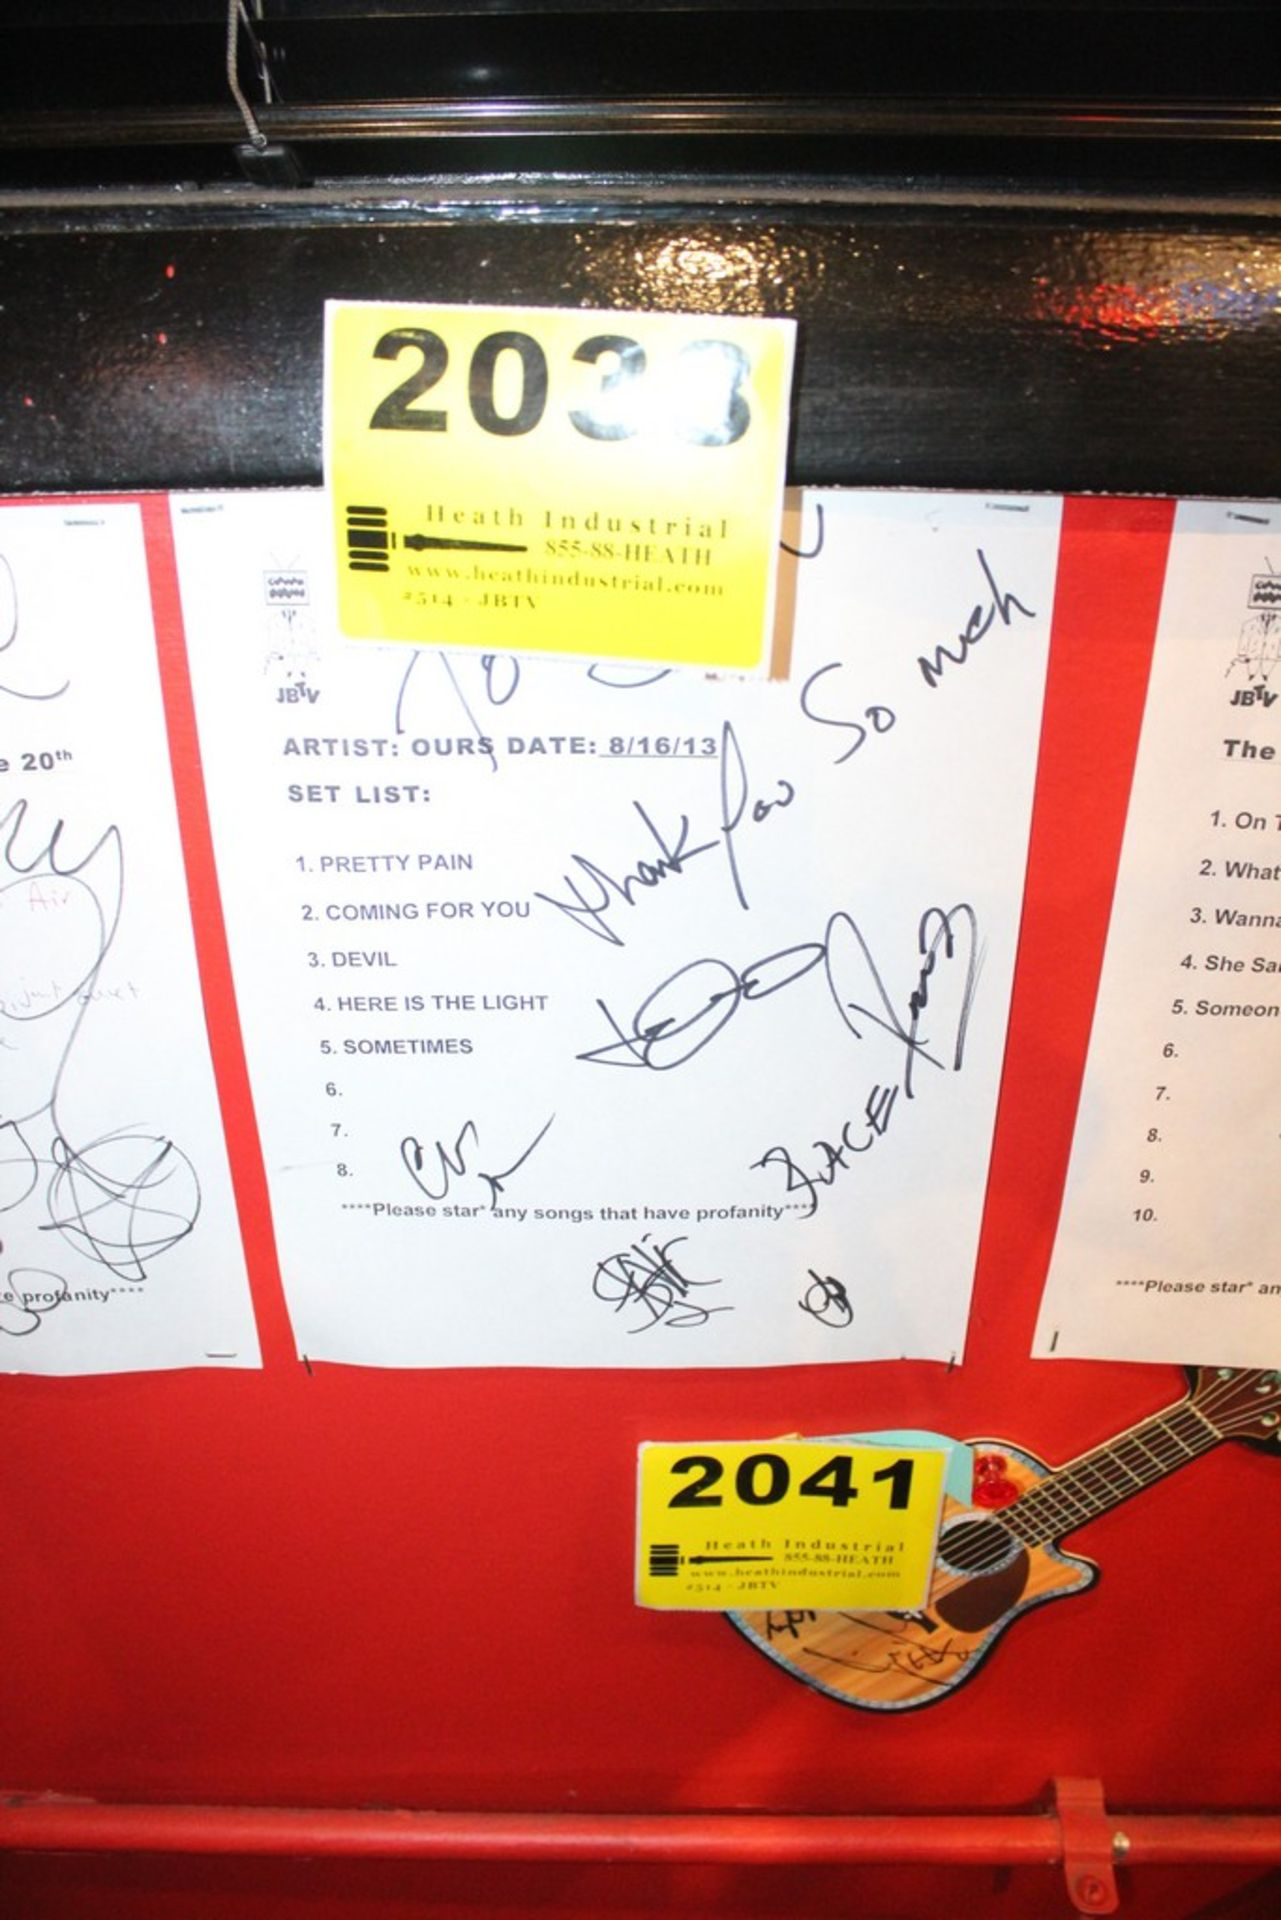 Lot 2038 - Ours Signed Set List